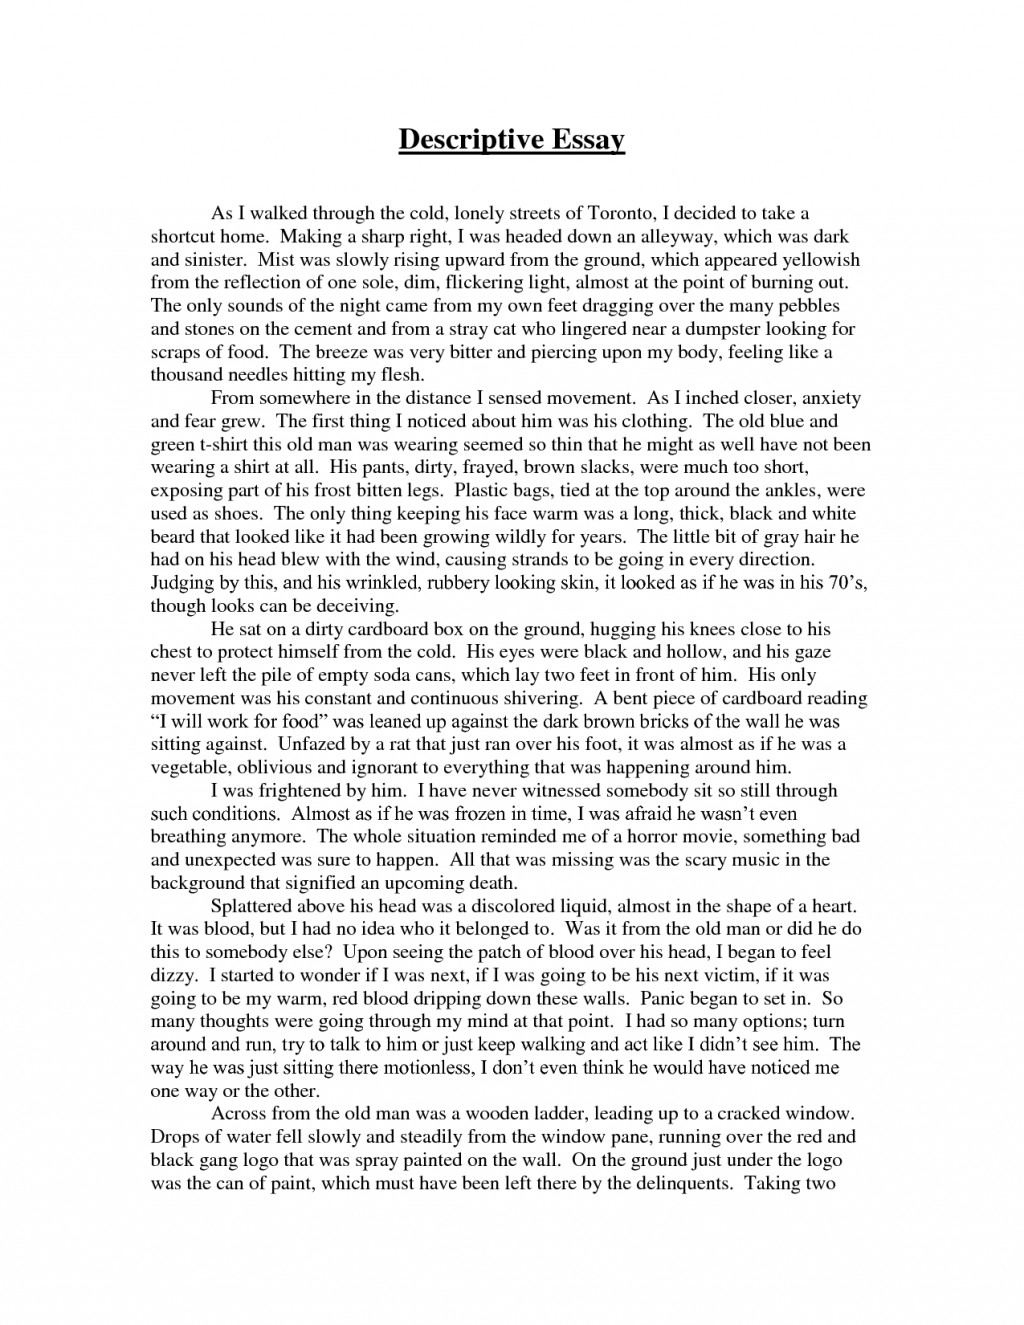 003 Example Of Descriptive Essay Discriptive Cover Letter For How Write Writing Paragraph About Place To In Remarkable A Your Mother Painting Picture Pdf Large